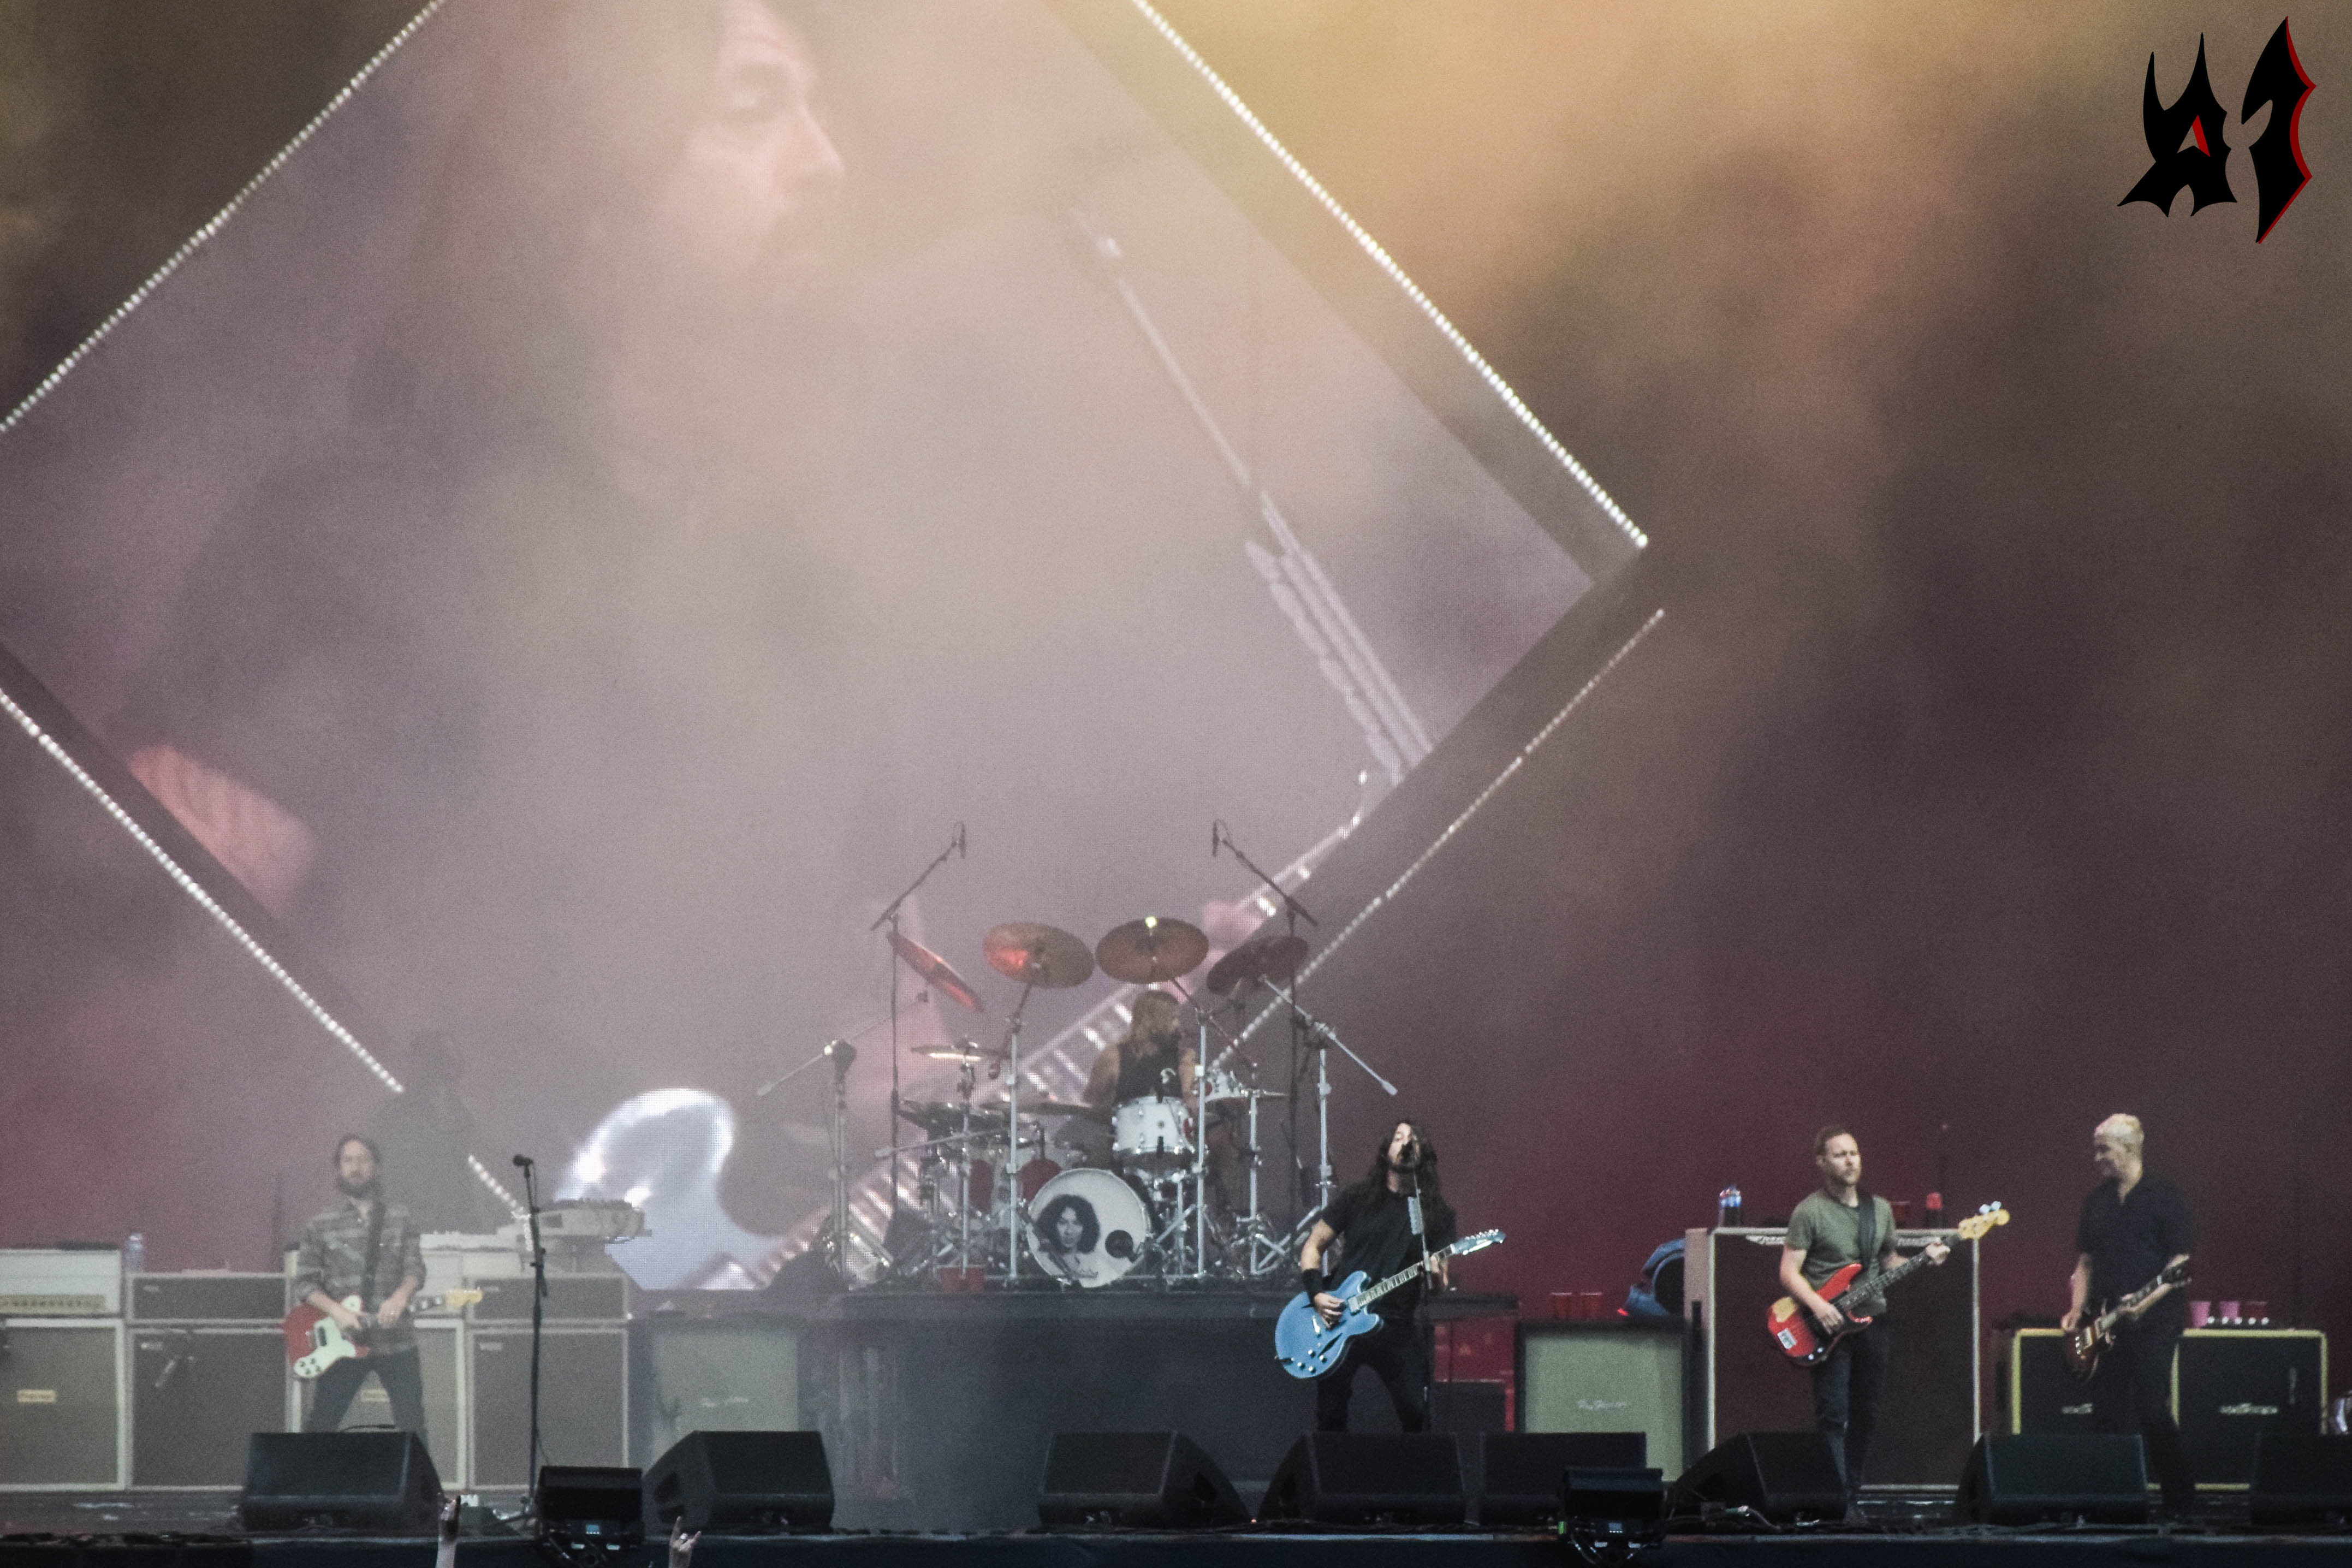 Donwload 2018 – Day 3 - Foo Fighters 1